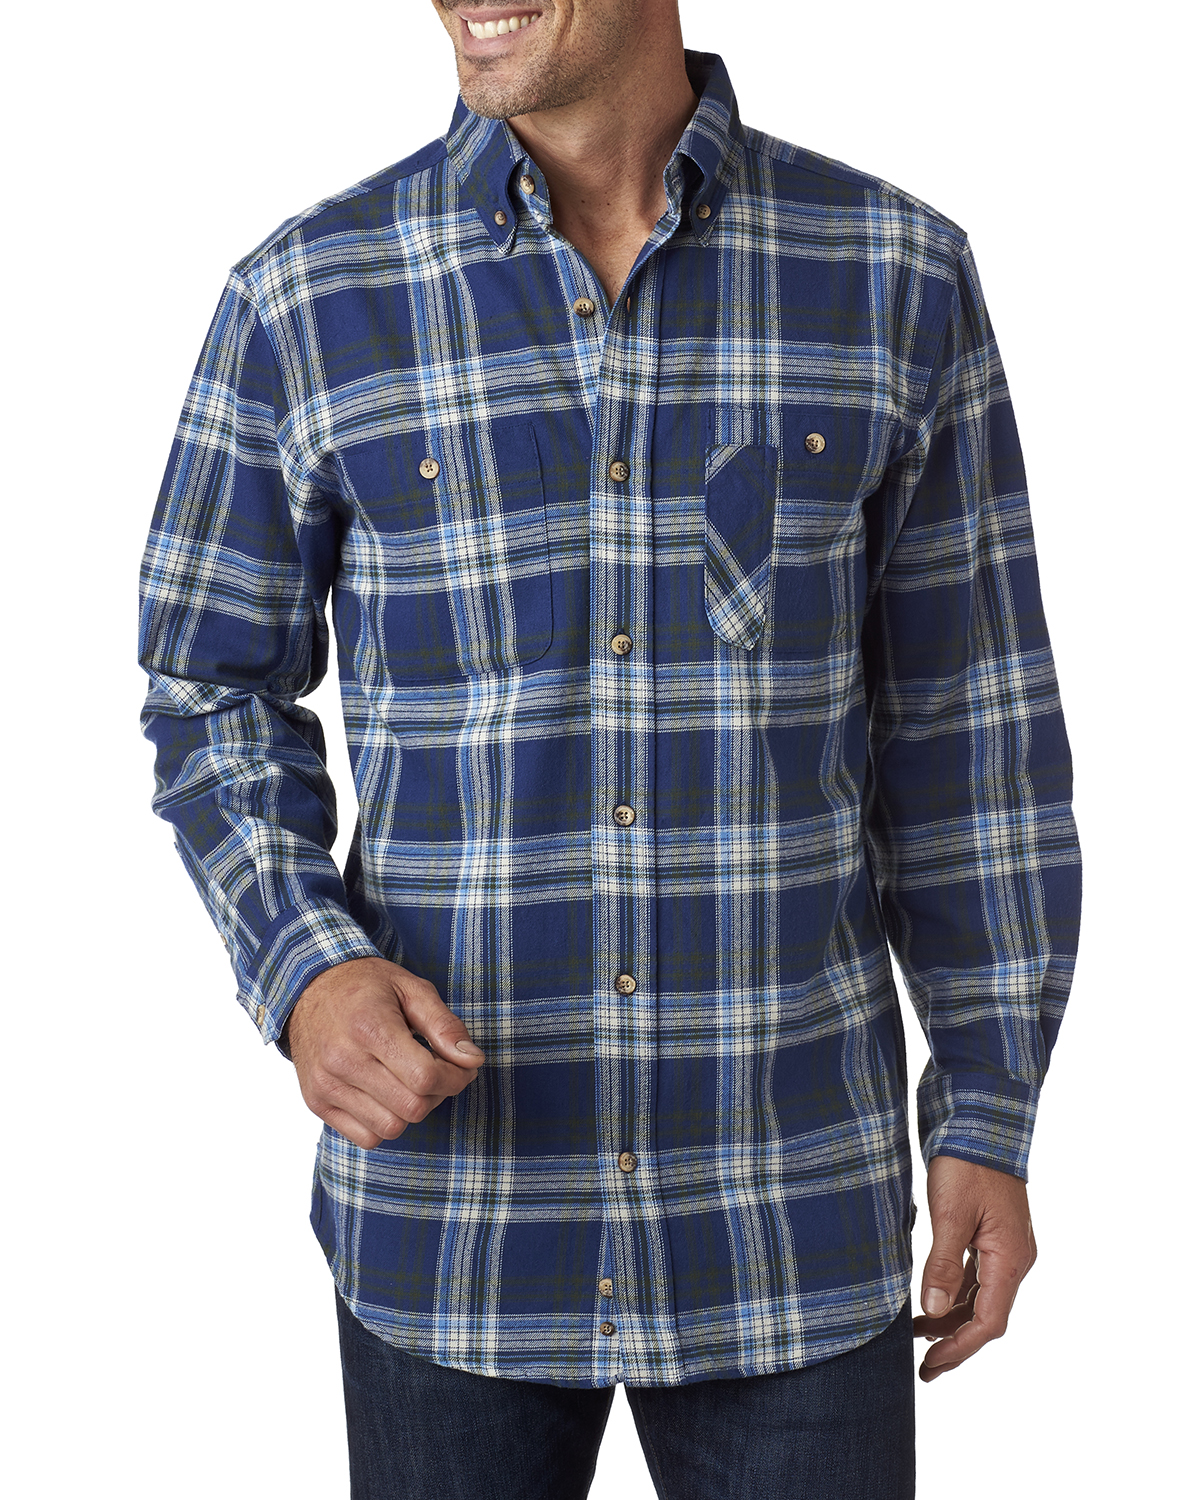 Backpacker BP7001 - Men's Yarn-Dyed Flannel Shirt